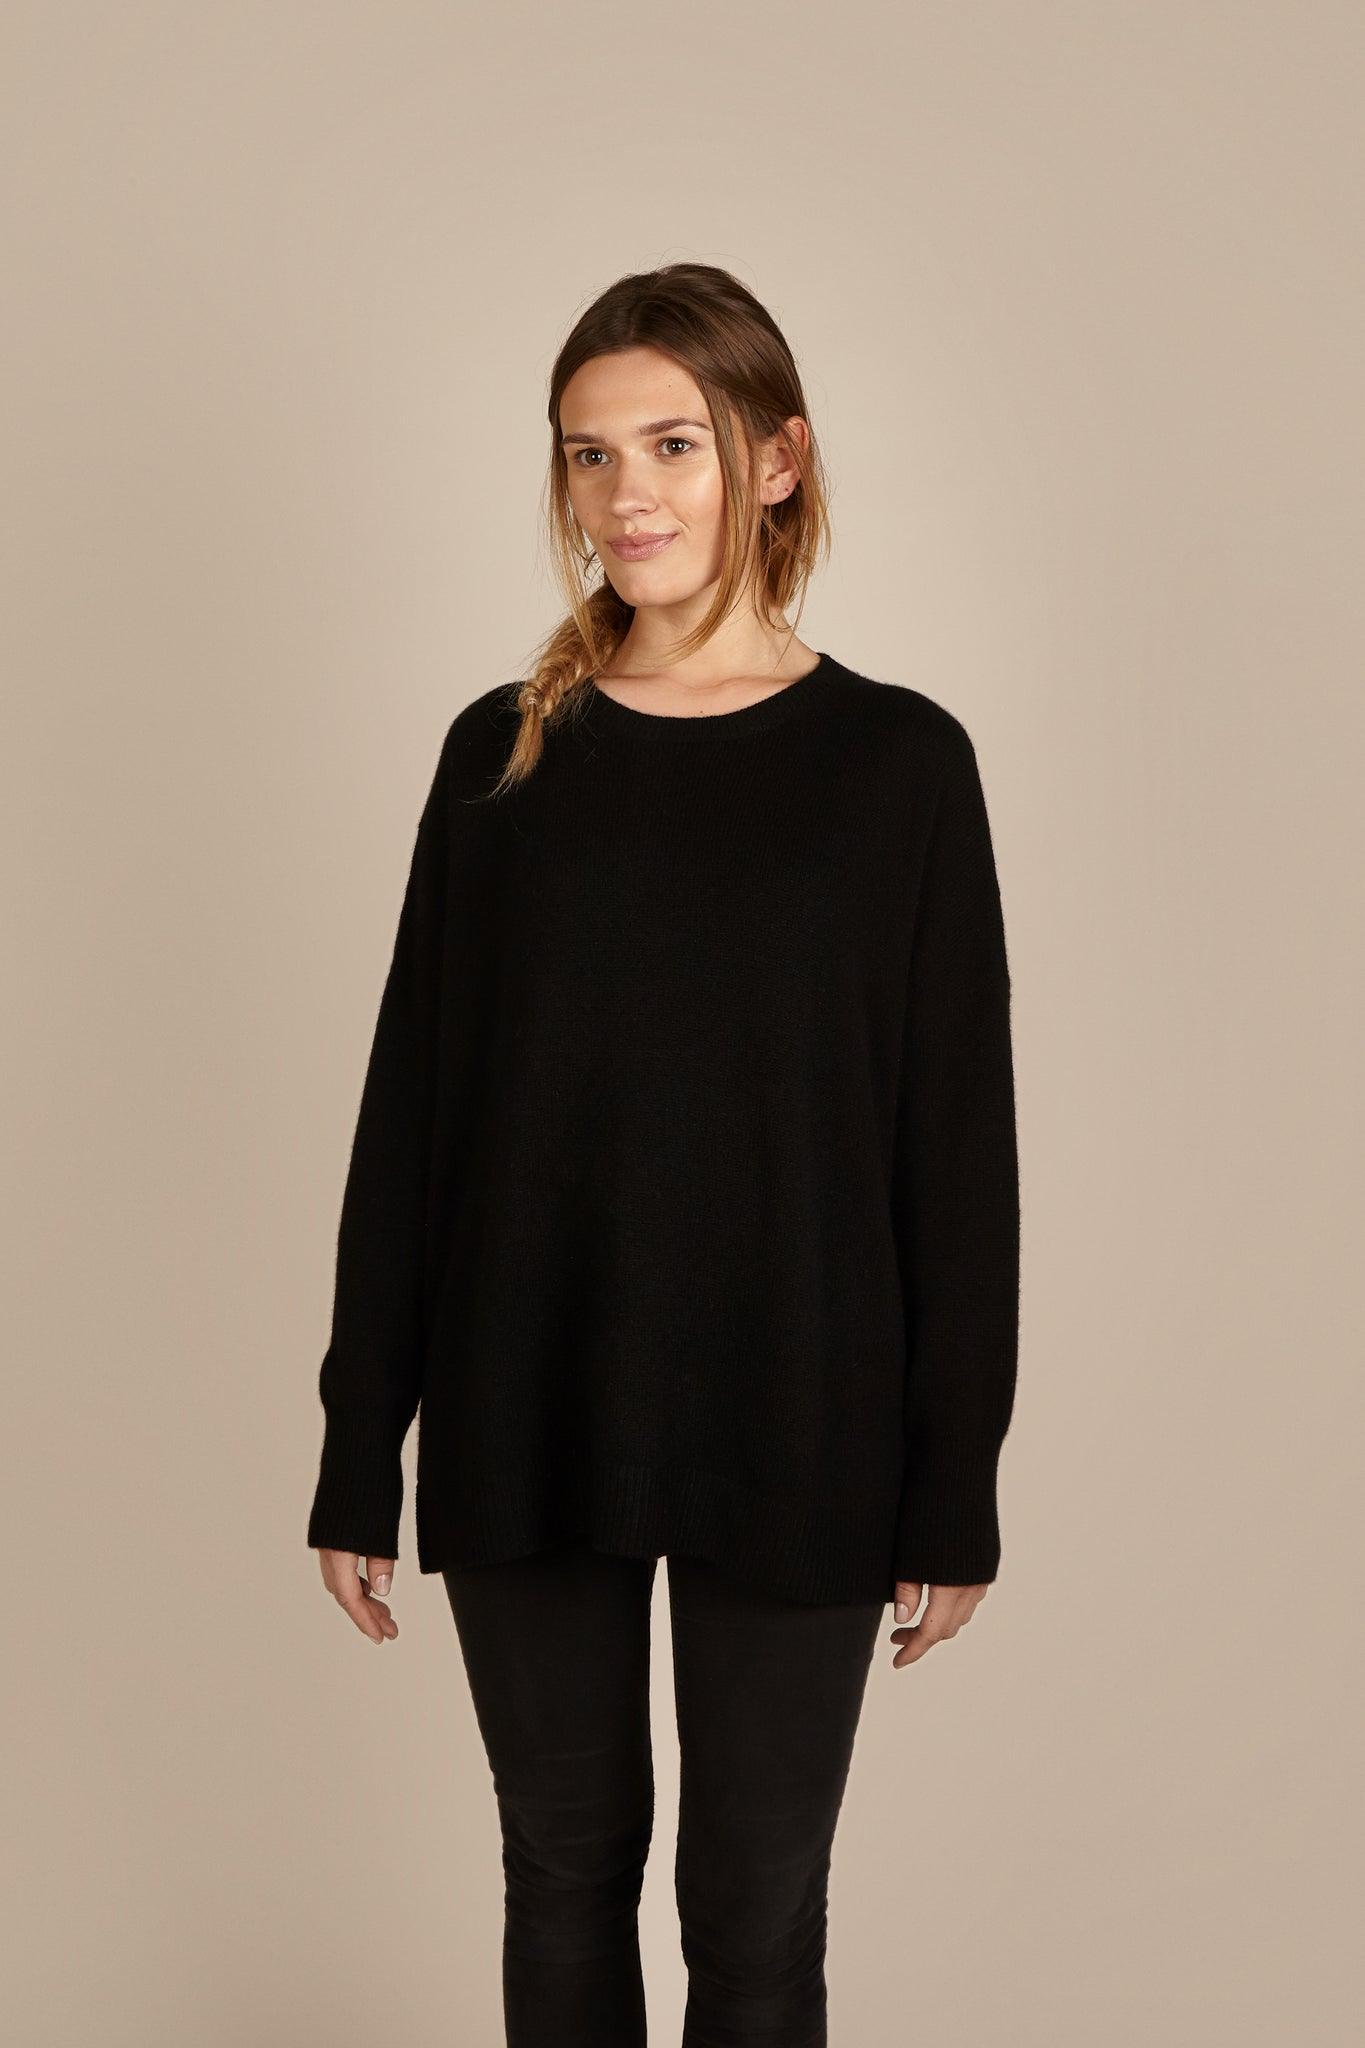 Womens Crew Neck Cashmere Jumper, Sweater in Black